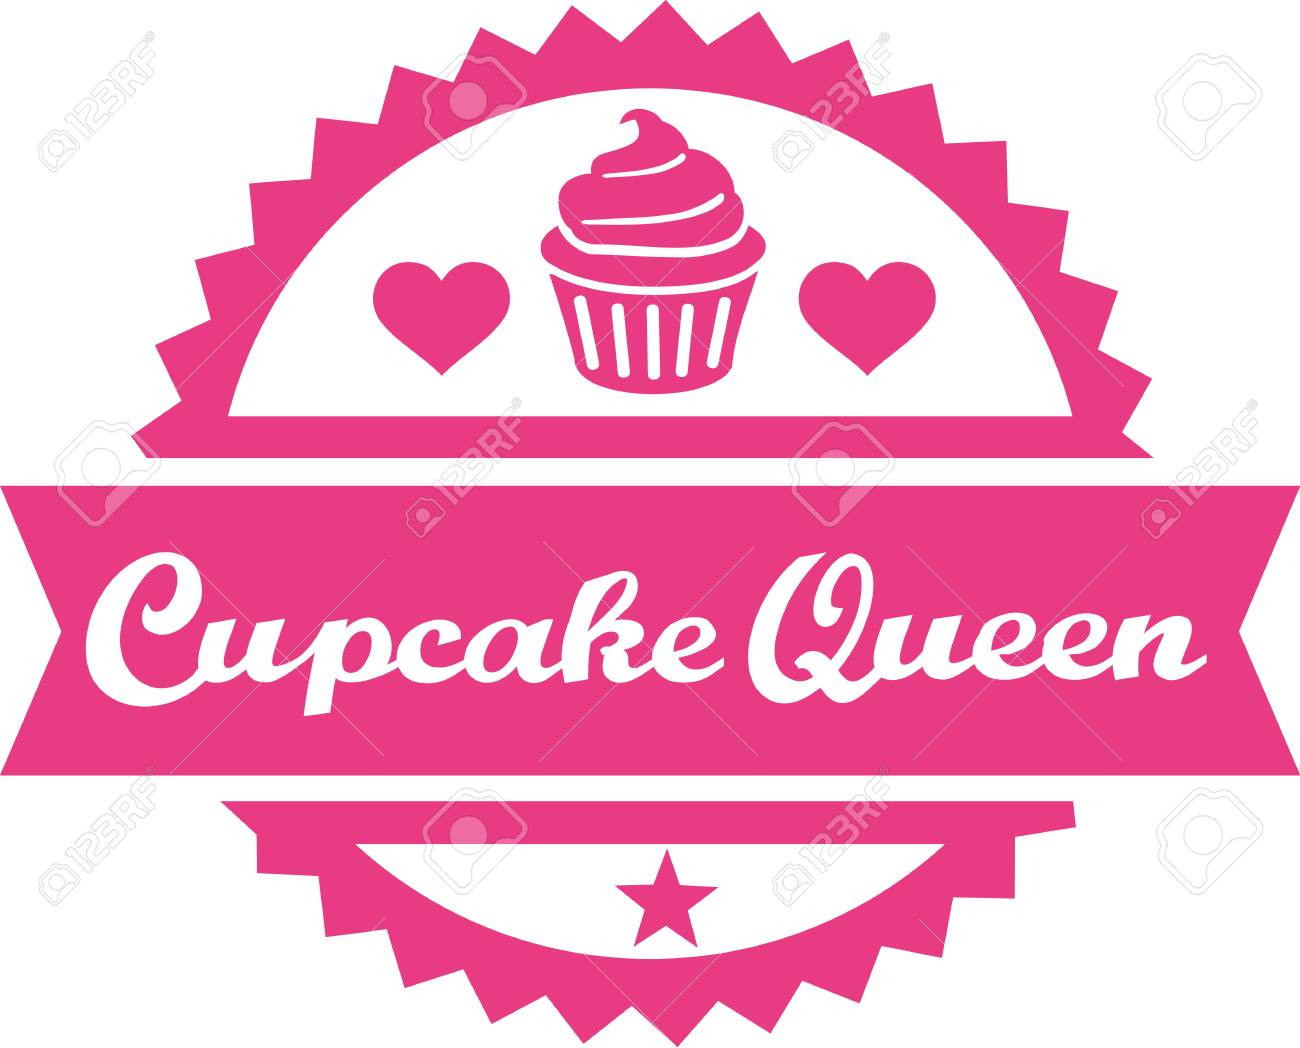 cupcake queen royalty free cliparts vectors and stock illustration